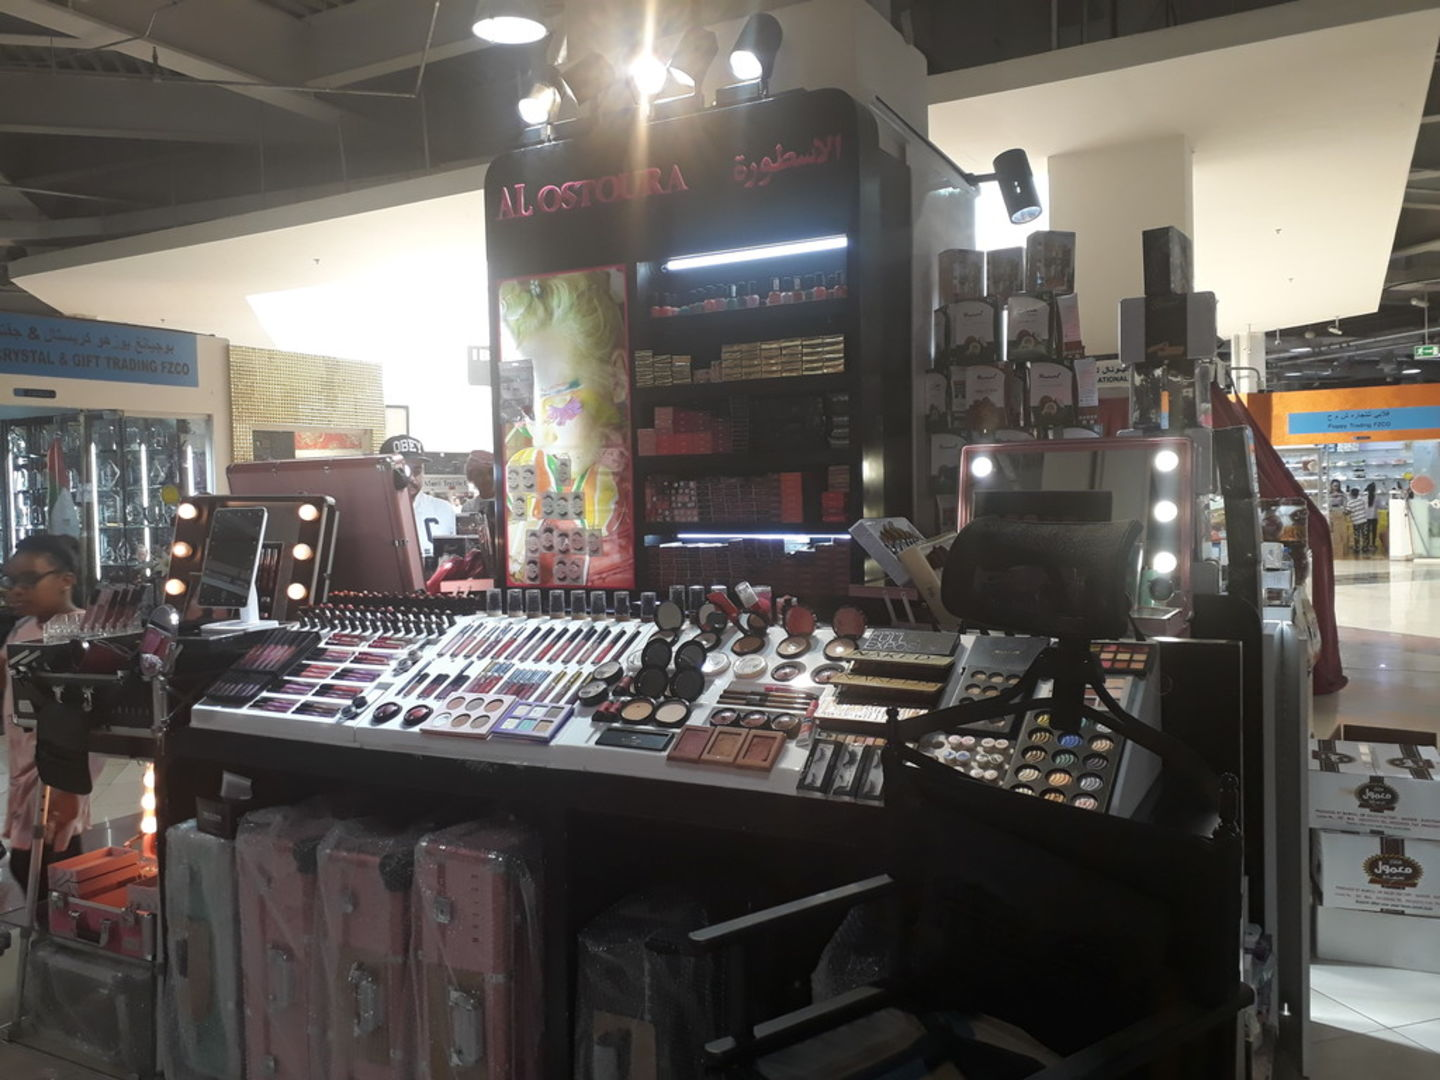 HiDubai-business-al-oustra-trading-shopping-beauty-cosmetics-stores-international-city-warsan-1-dubai